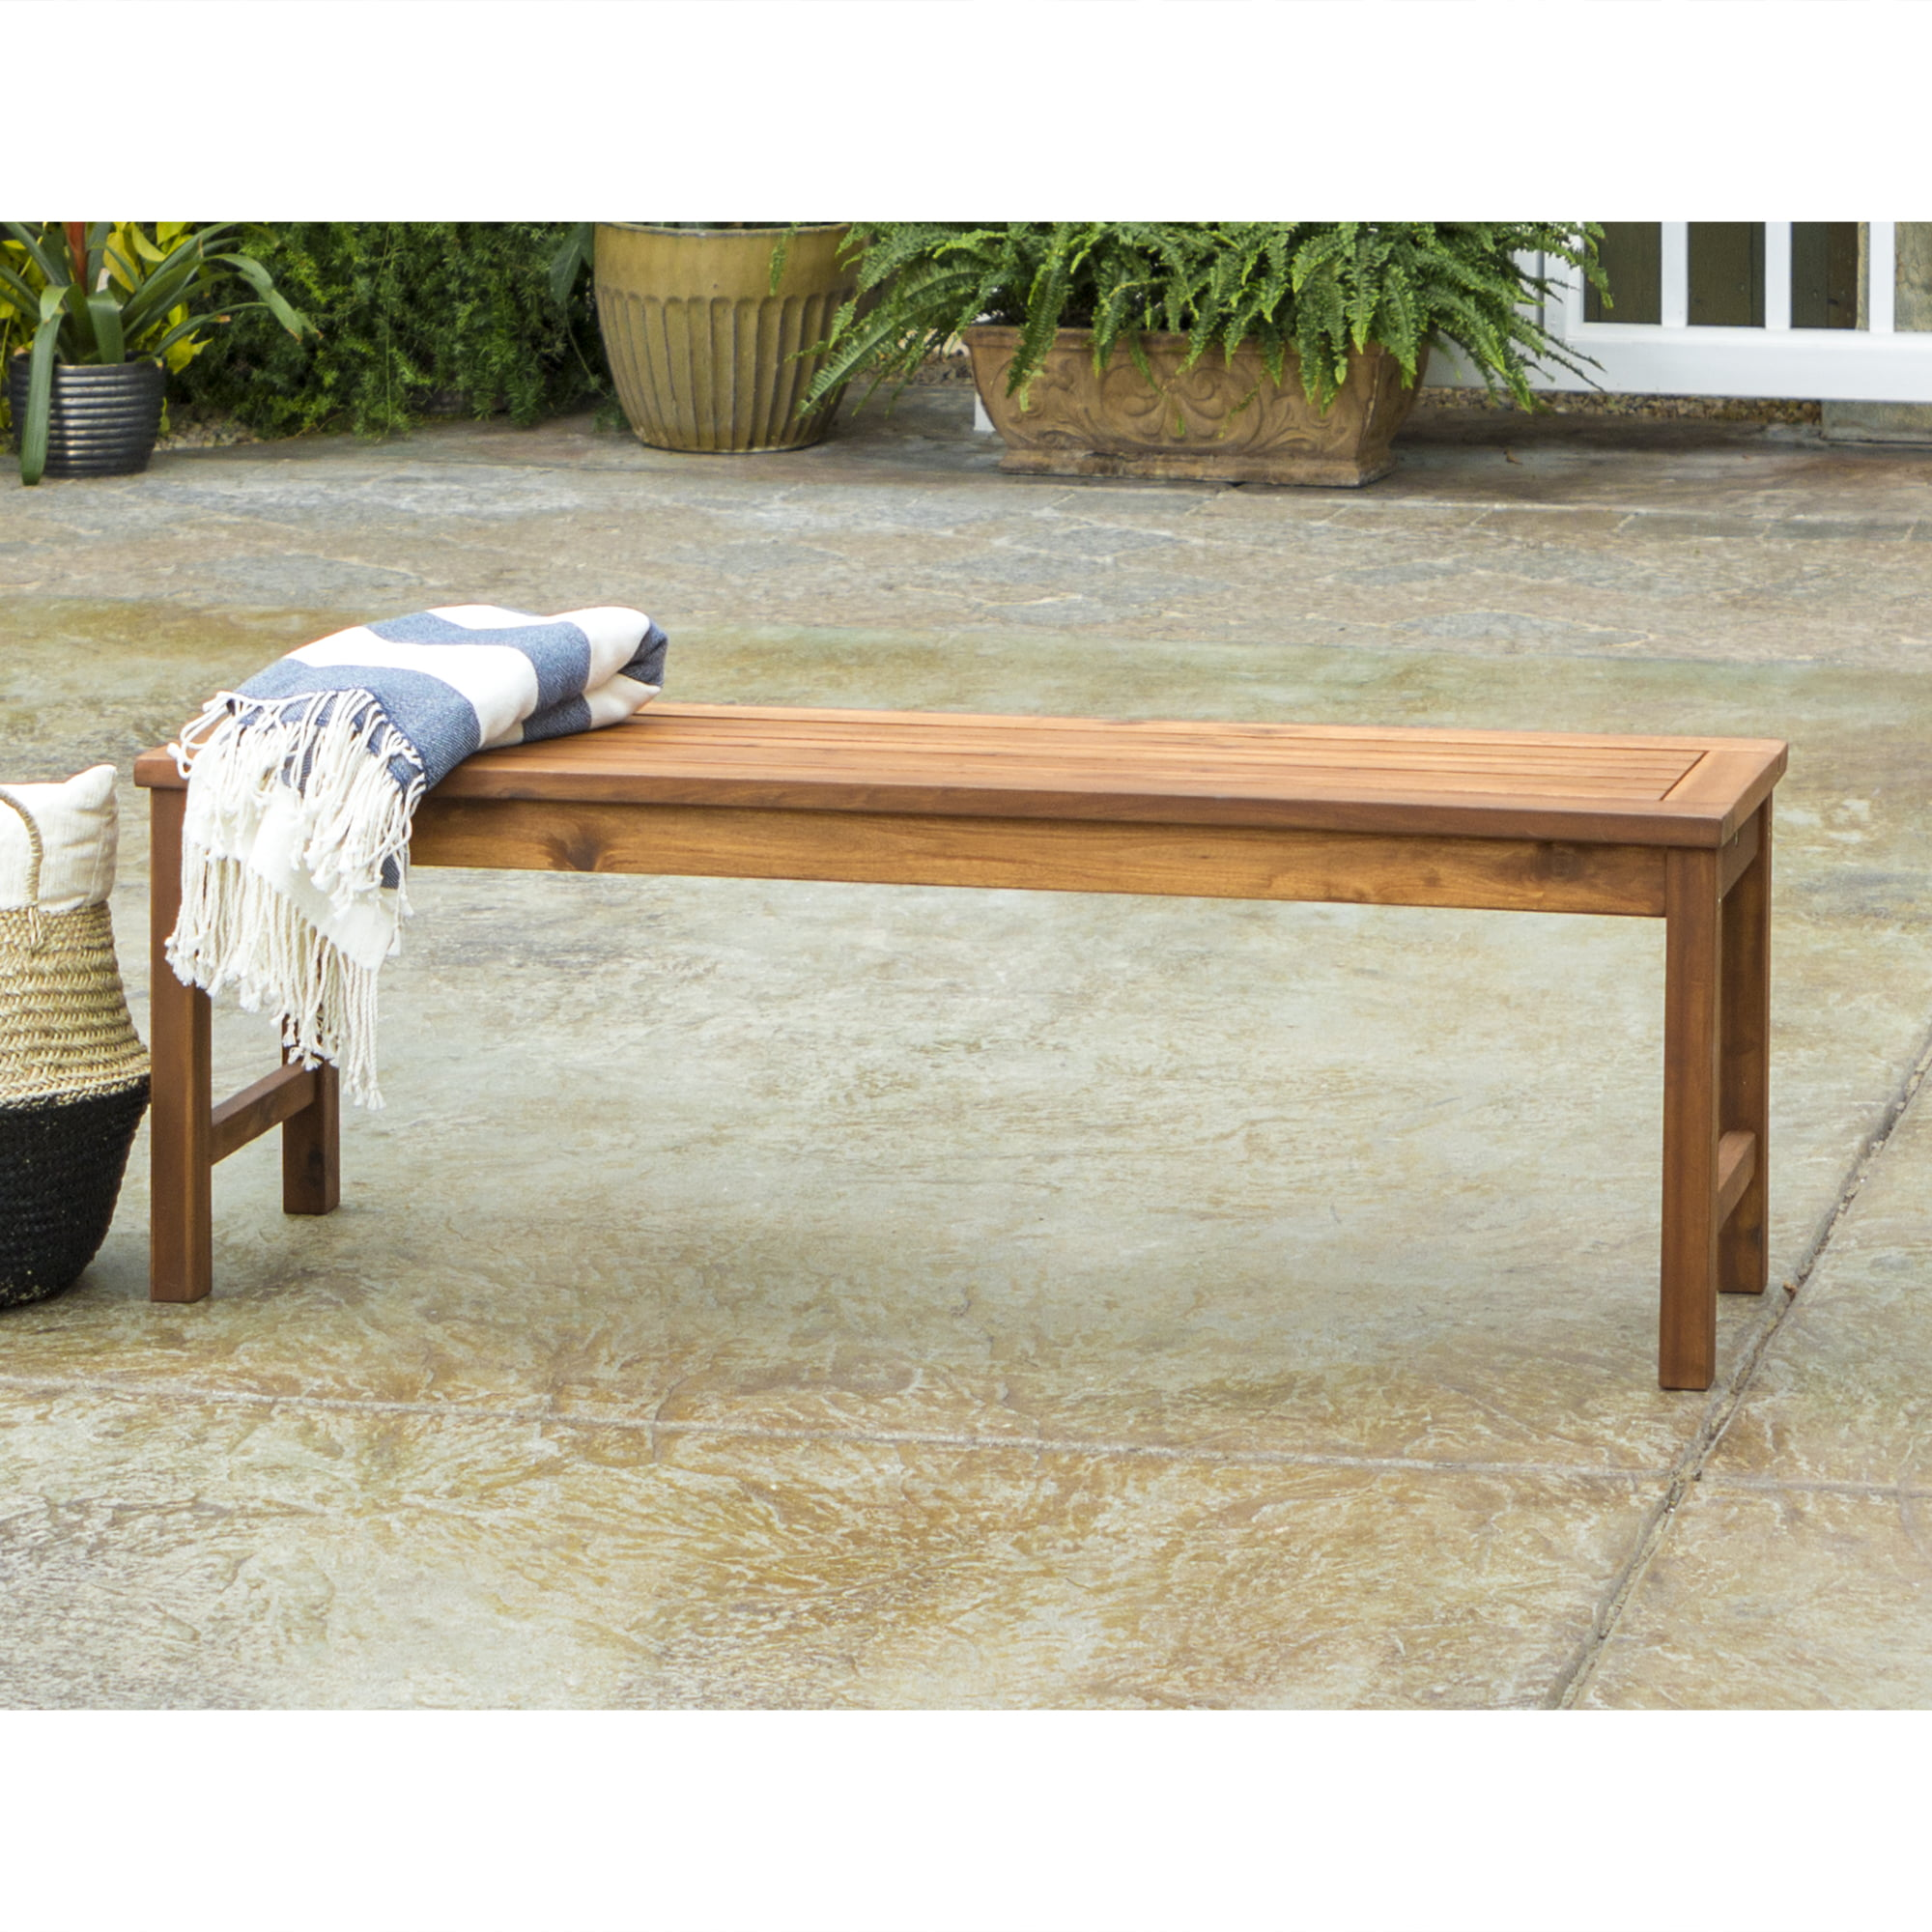 Acacia Wood Patio Bench, Brown by WE Furniture